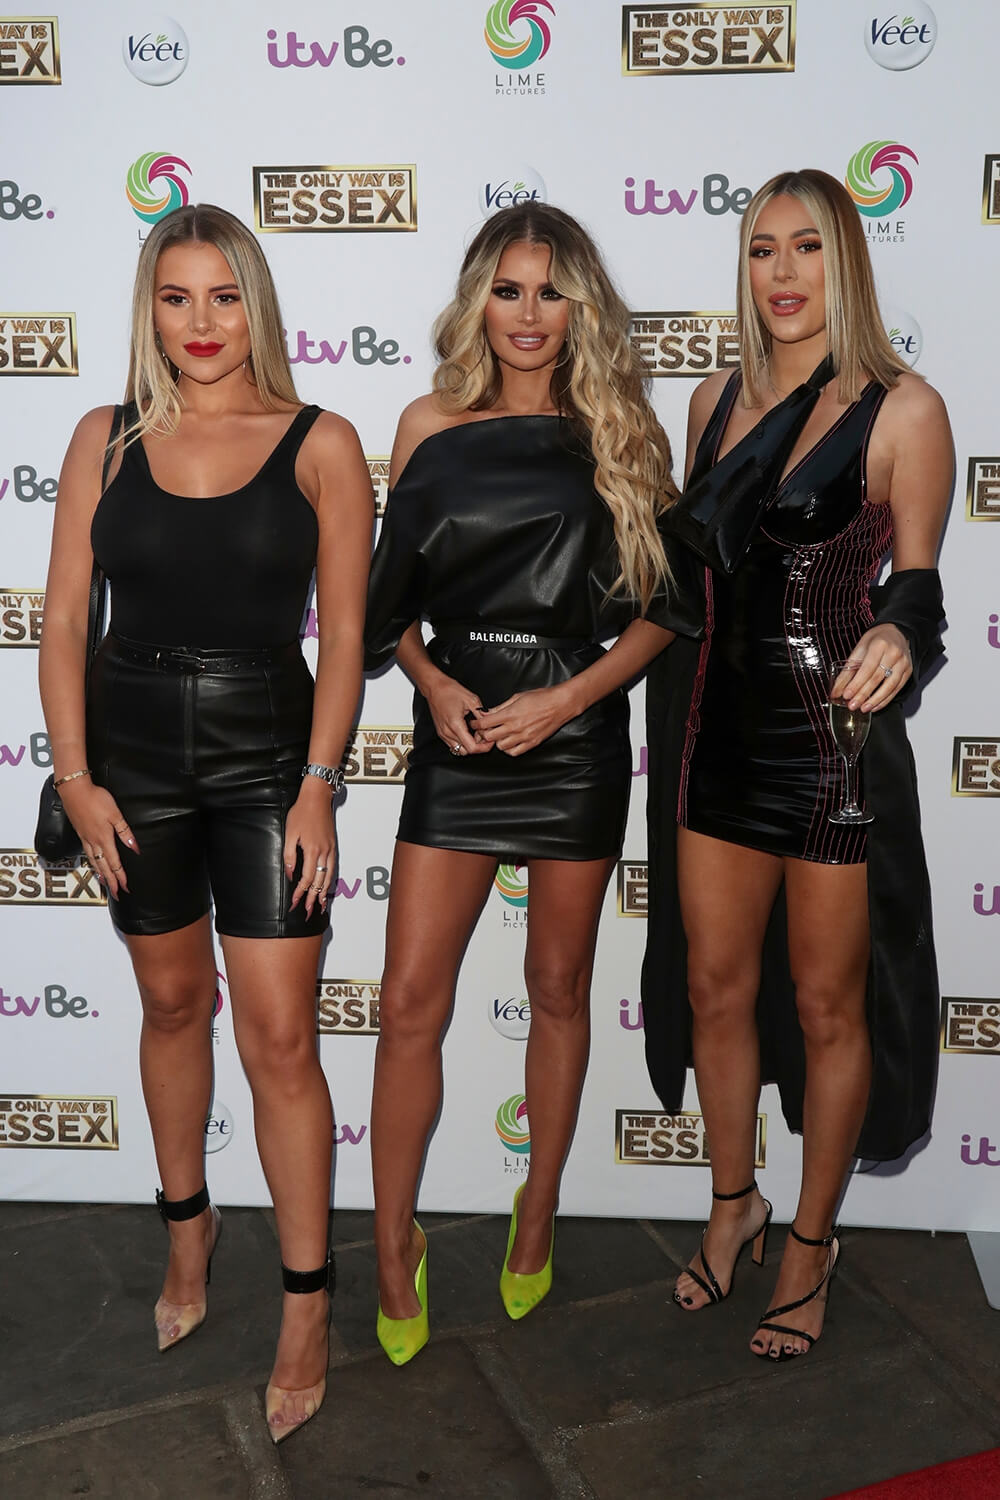 Demi Sims, Chloe Sims & Georgia Kousoulou attend The Only Way Is Essex' TV show press night